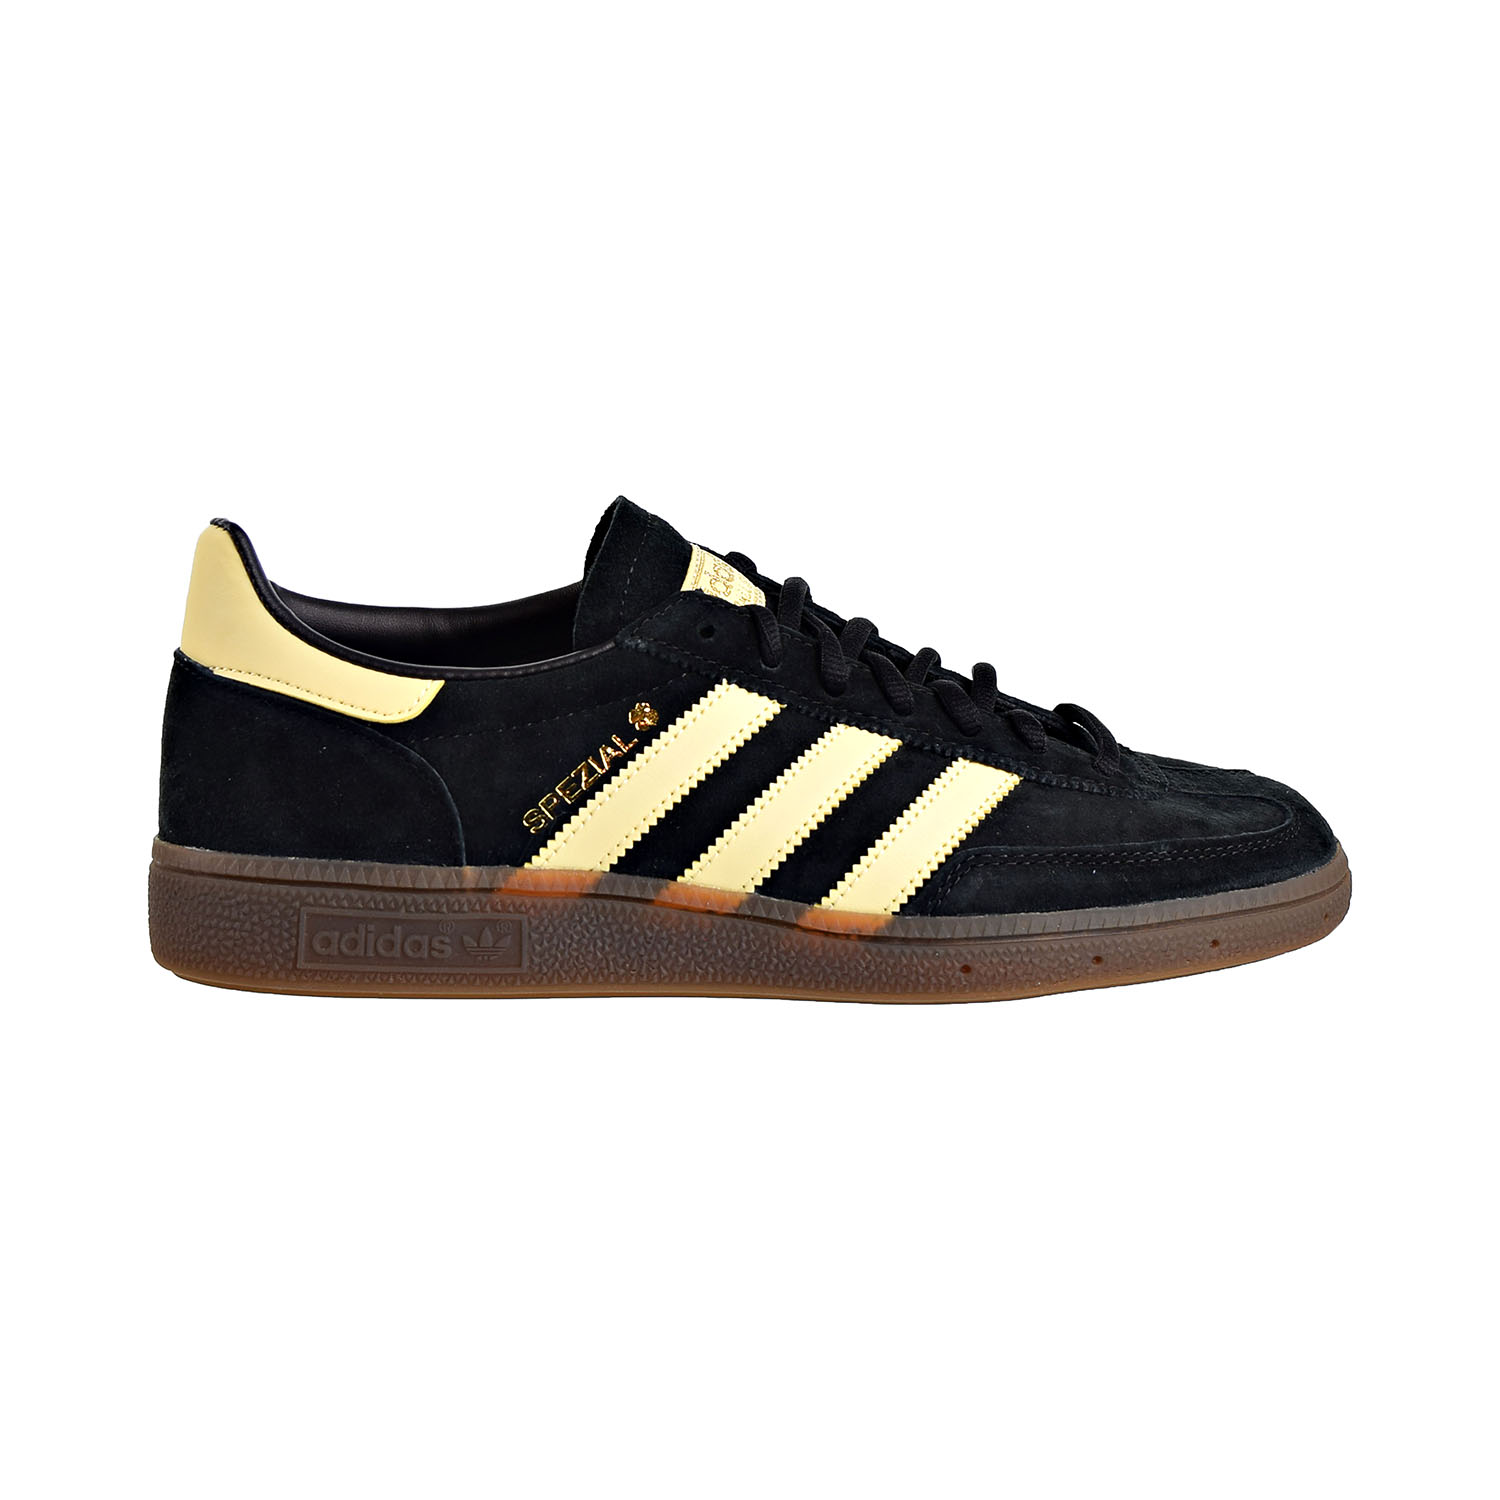 Details about Adidas Handball Spezial Mens Shoes Core Black Easy Yellow Gum BD7621